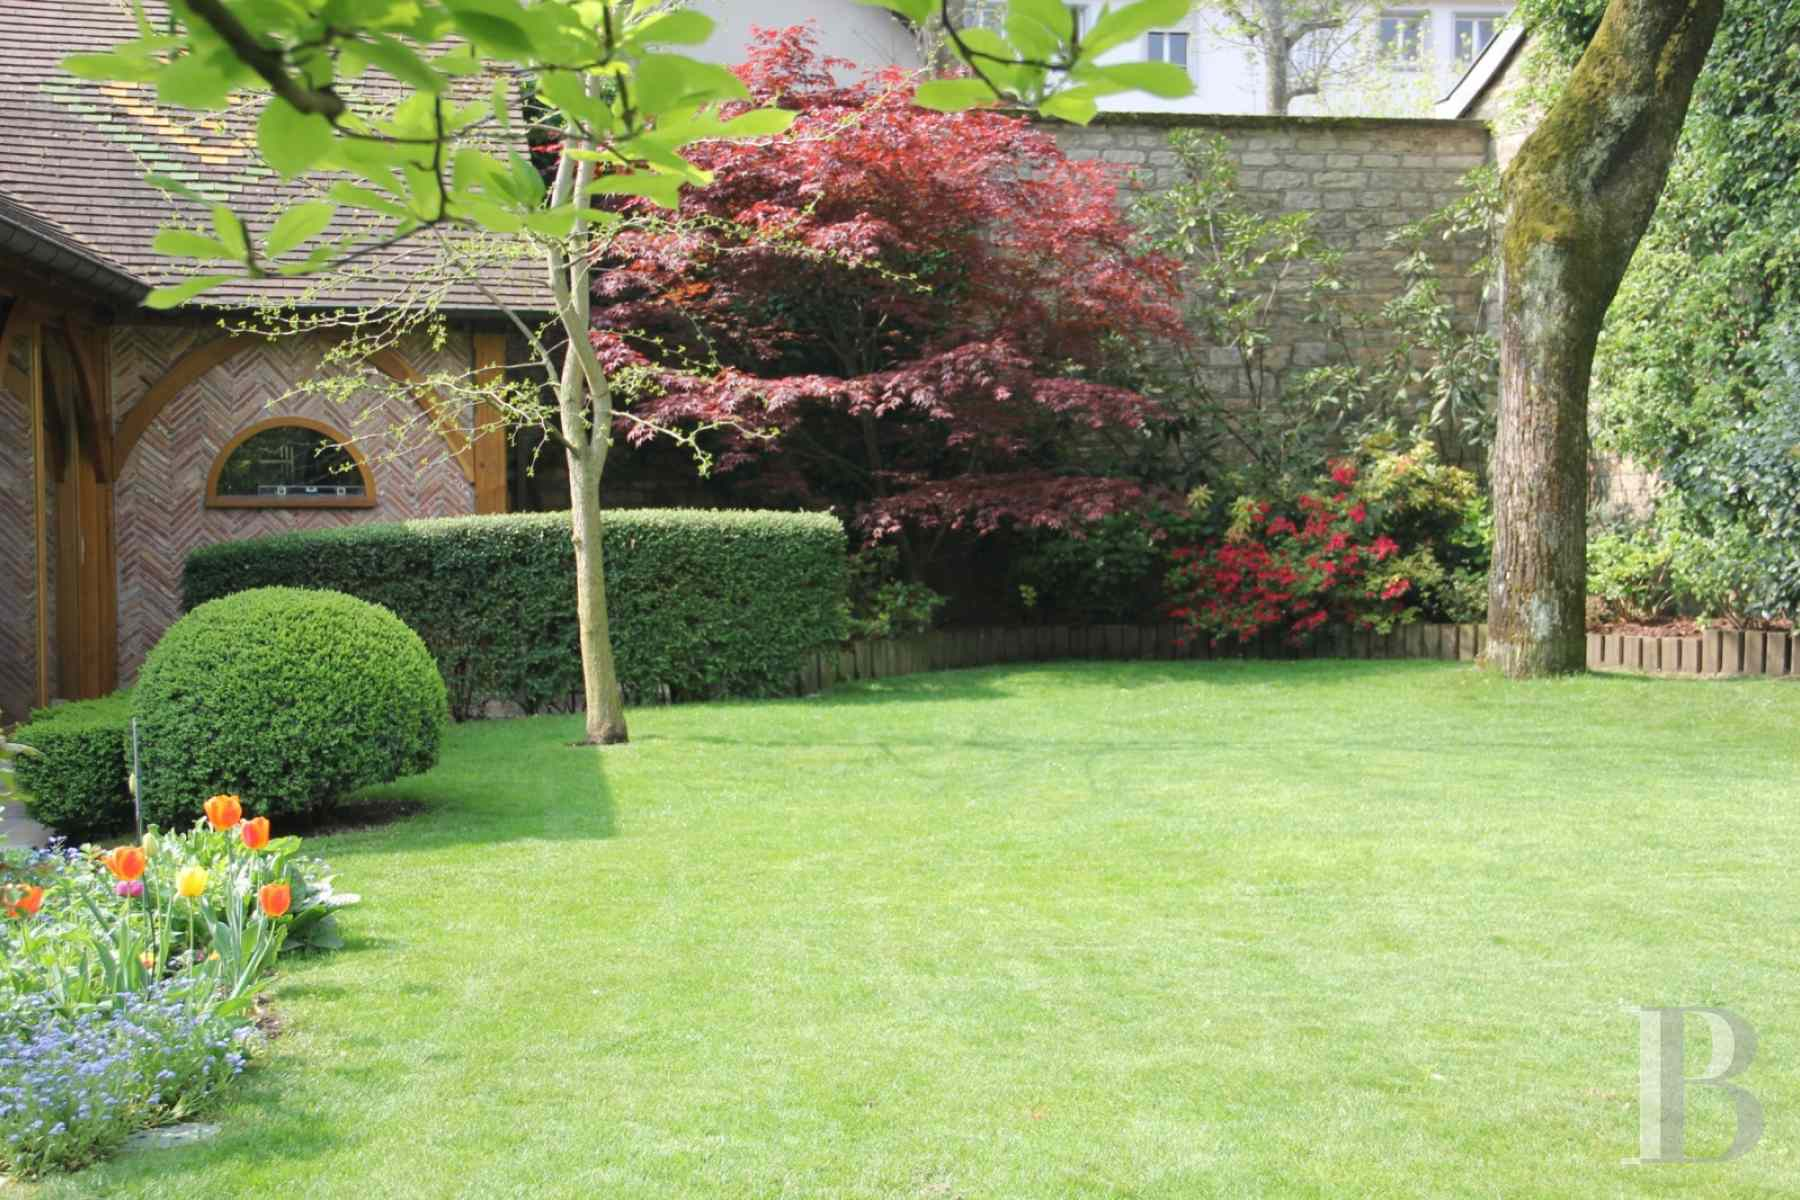 mansion houses for sale France burgundy flat garden - 12 zoom